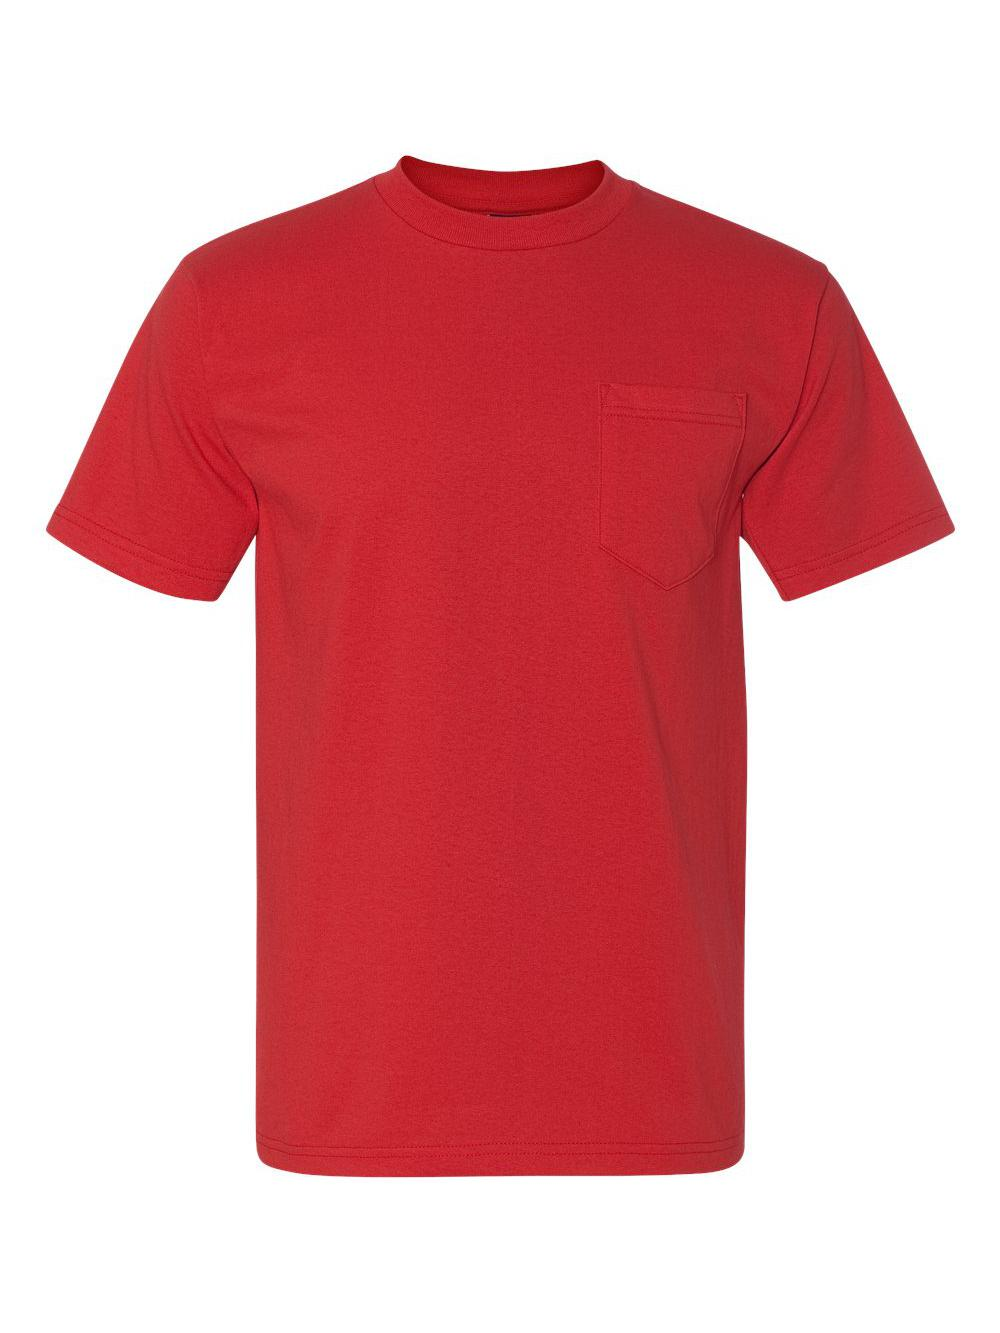 Bayside-Union-Made-Short-Sleeve-T-Shirt-with-a-Pocket-3015 thumbnail 24